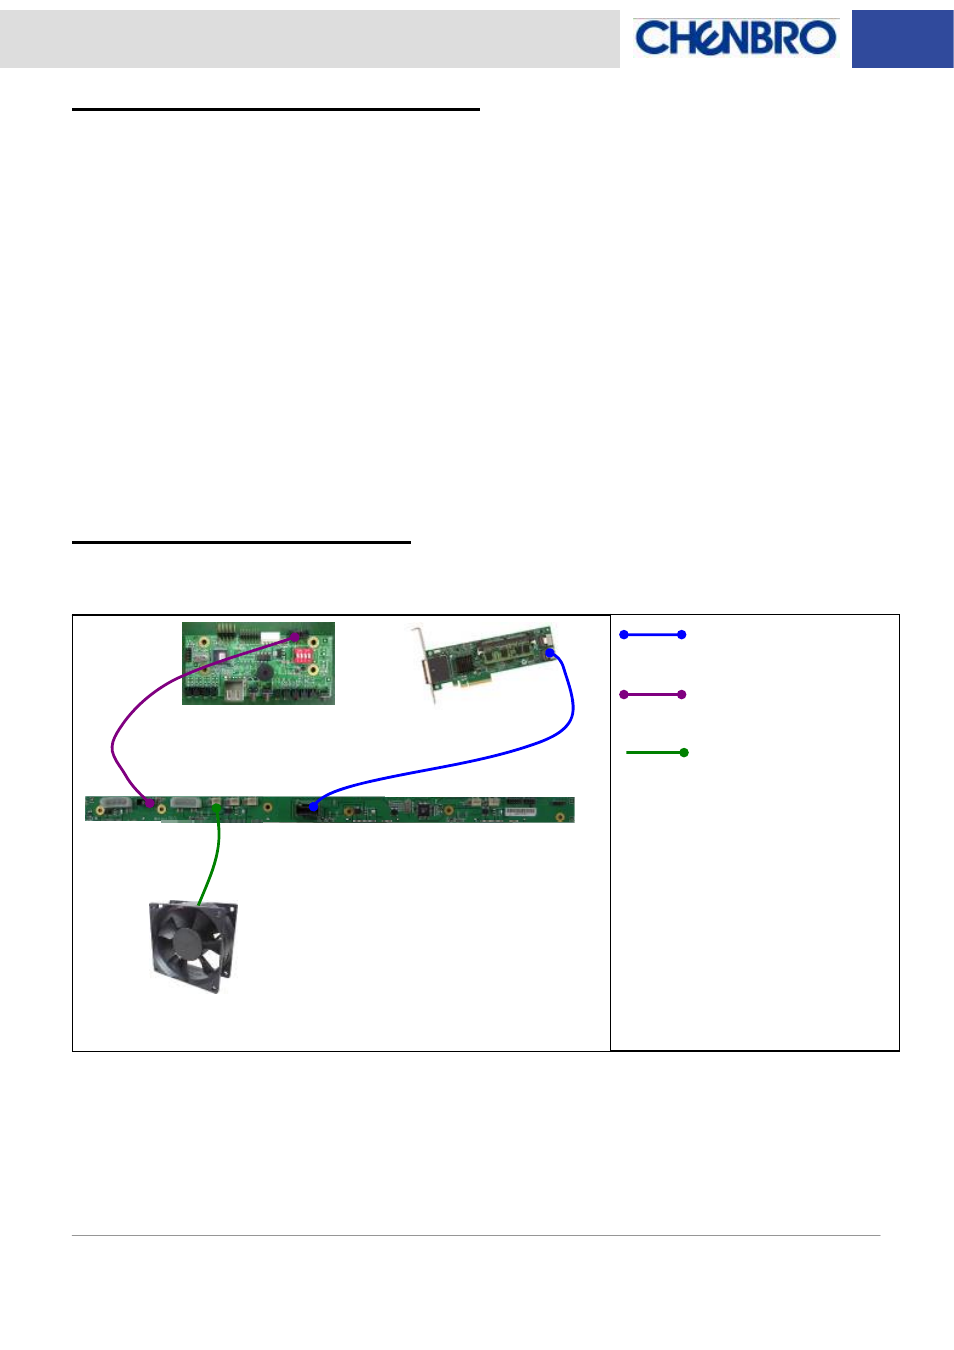 backplane and led board wiring chassis assembly example chenbro rh manualsdir com sas user guide 9.4 sas.planet user manual